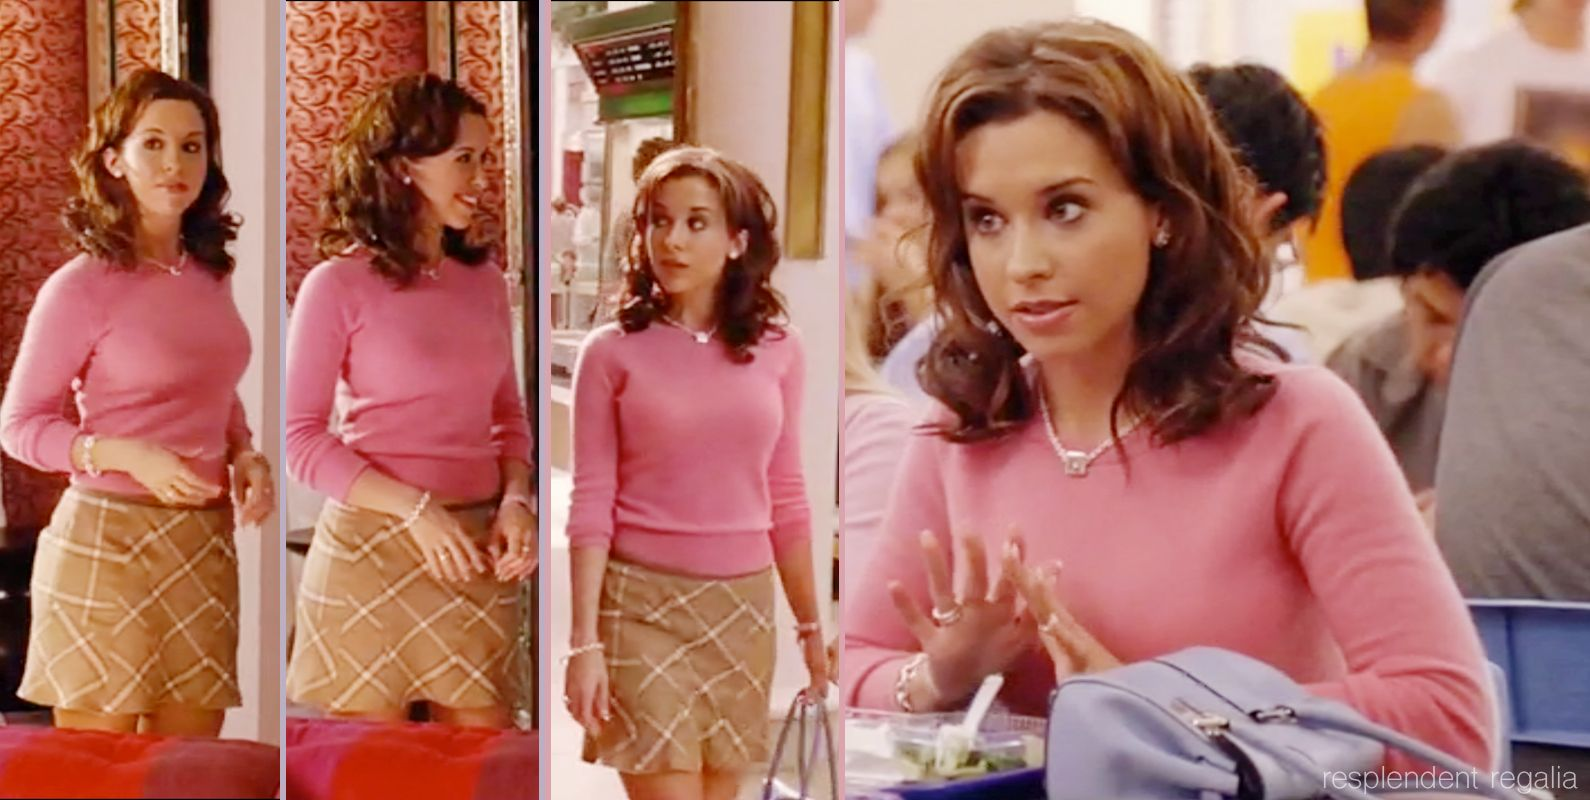 Gretchen Weiners (played by Lacey Chabert) in Mean Girls